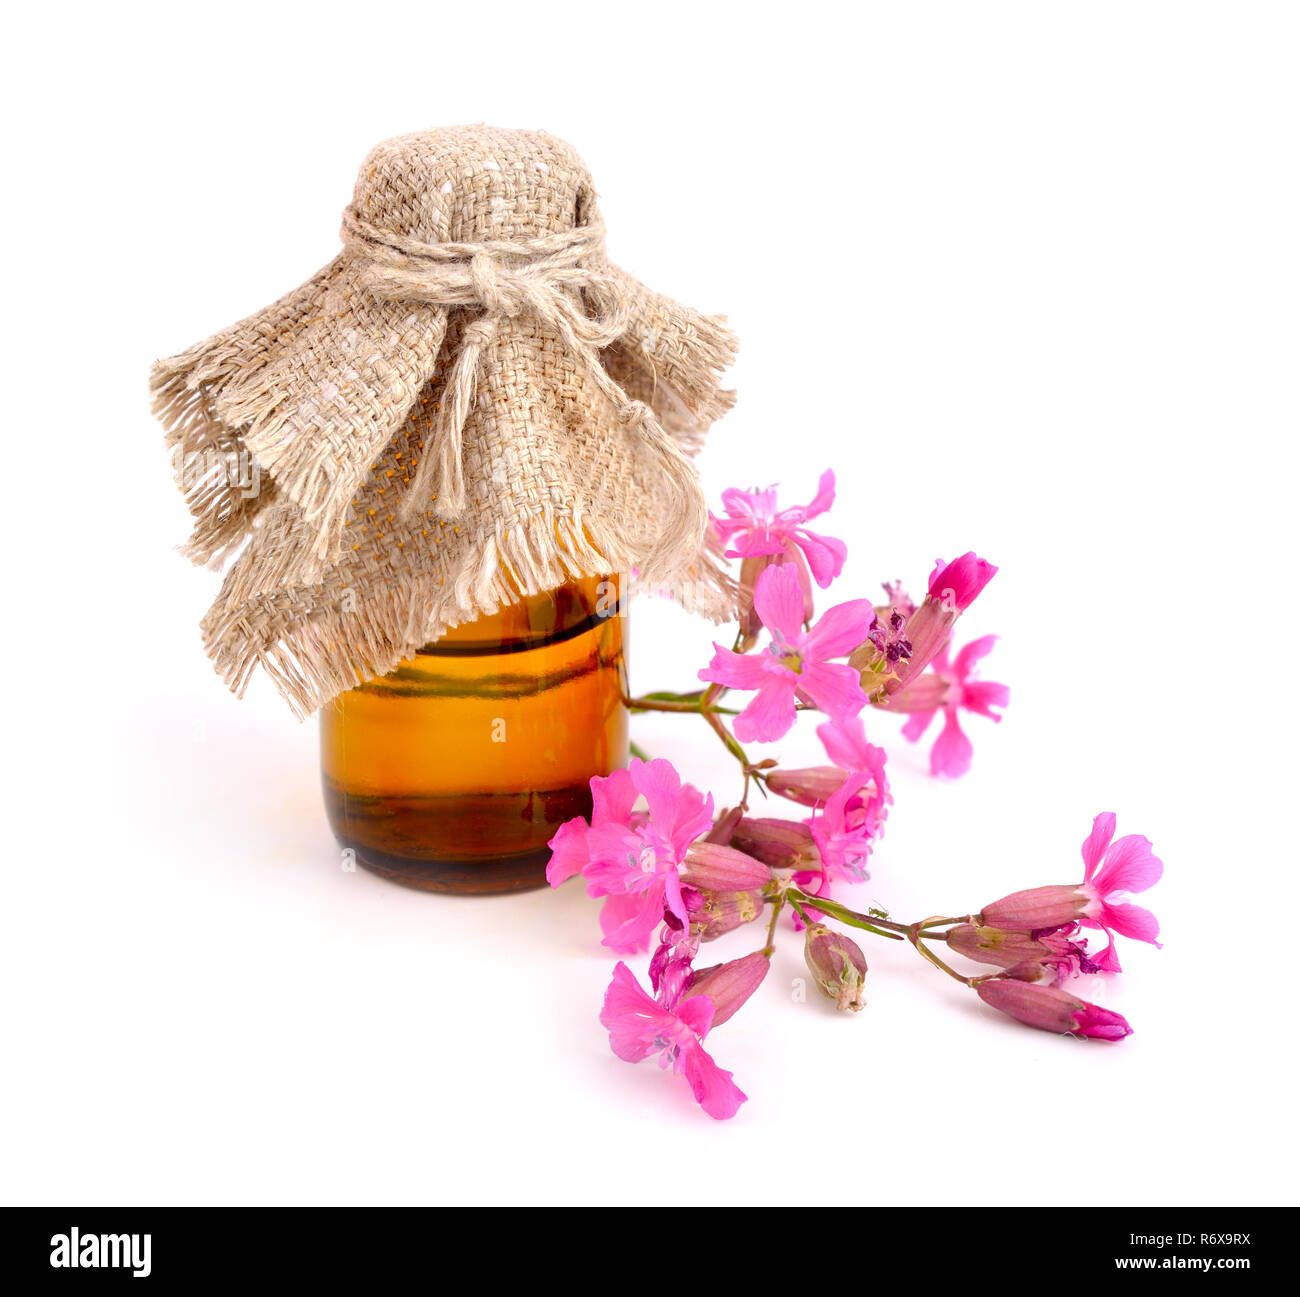 Dianthus deltoides (maiden pink) with pharmaceutical bottle. Stock Photo